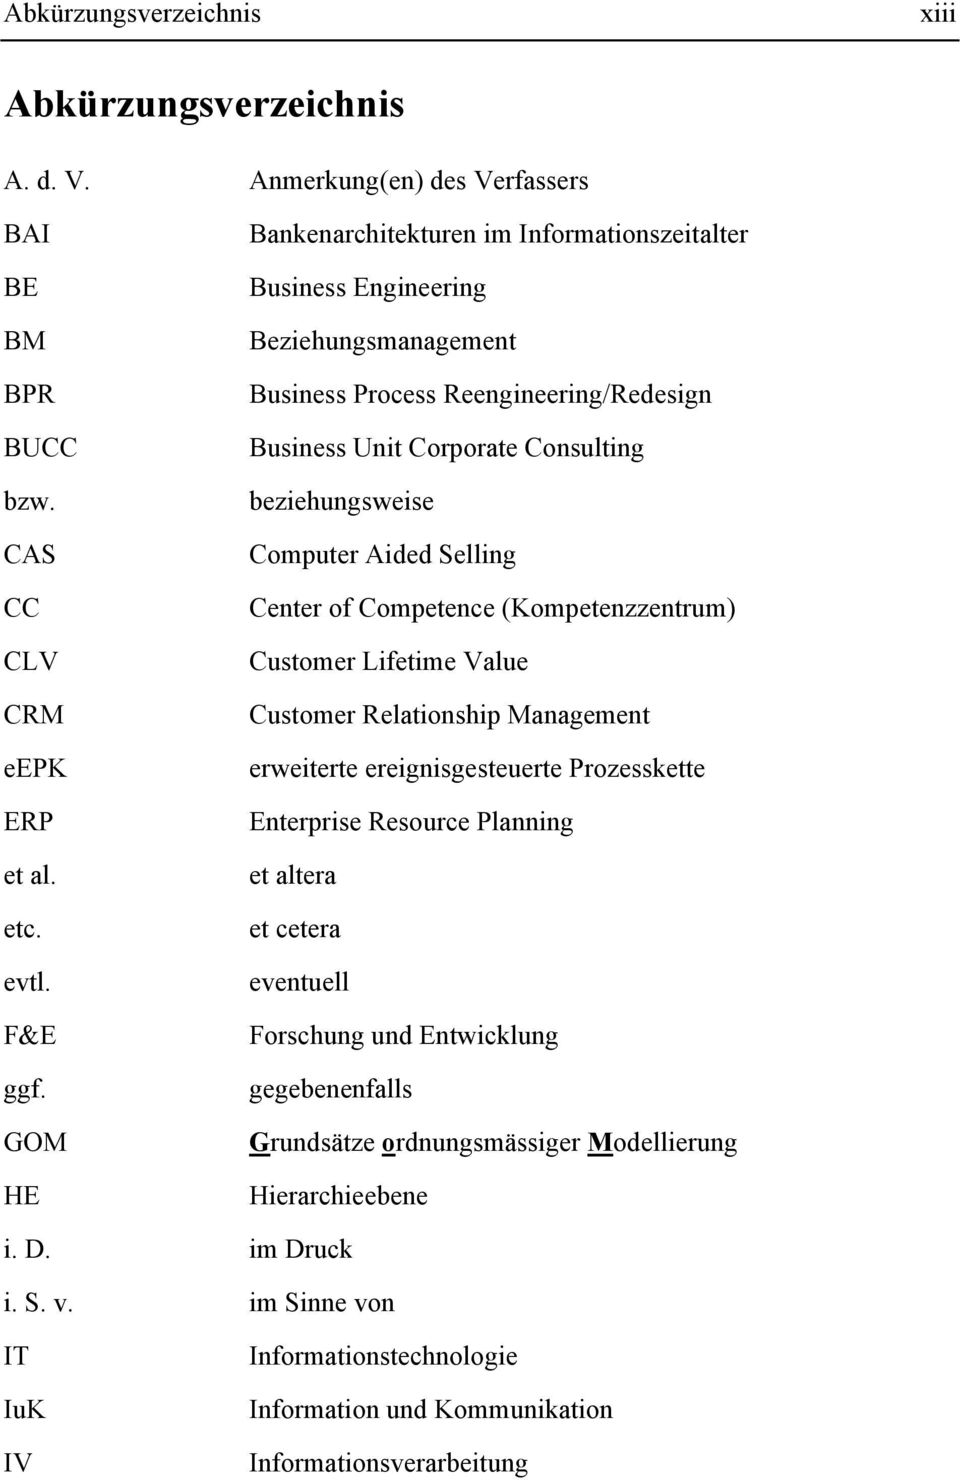 Aided Selling Center of Competence (Kompetenzzentrum) Customer Lifetime Value Customer Relationship Management erweiterte ereignisgesteuerte Prozesskette Enterprise Resource Planning et altera et